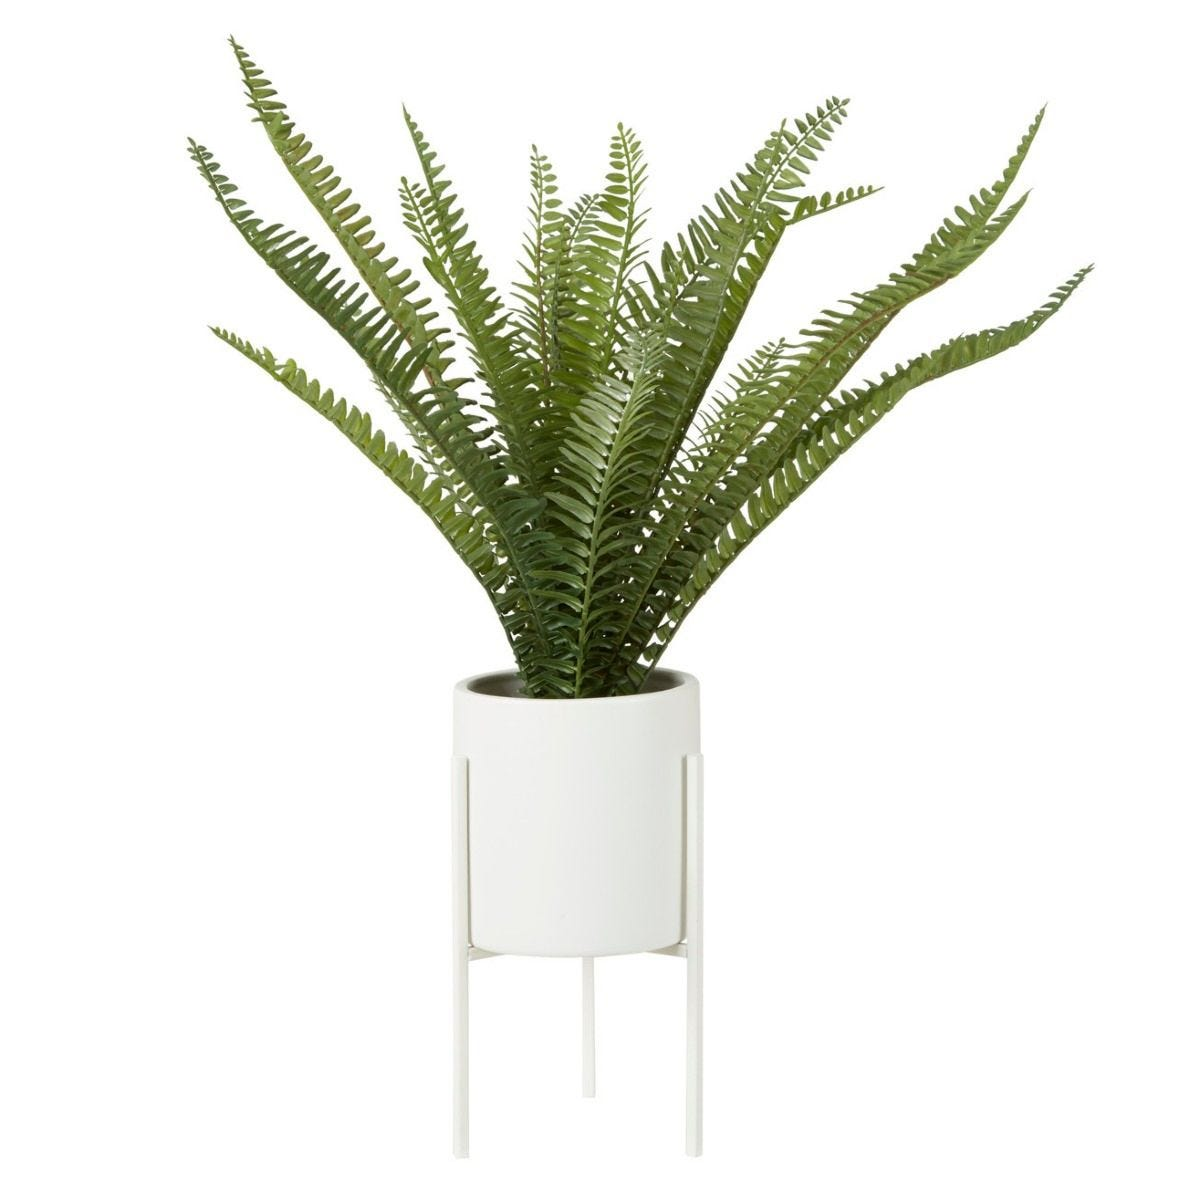 Fern White Cement Pot with a Iron Stand